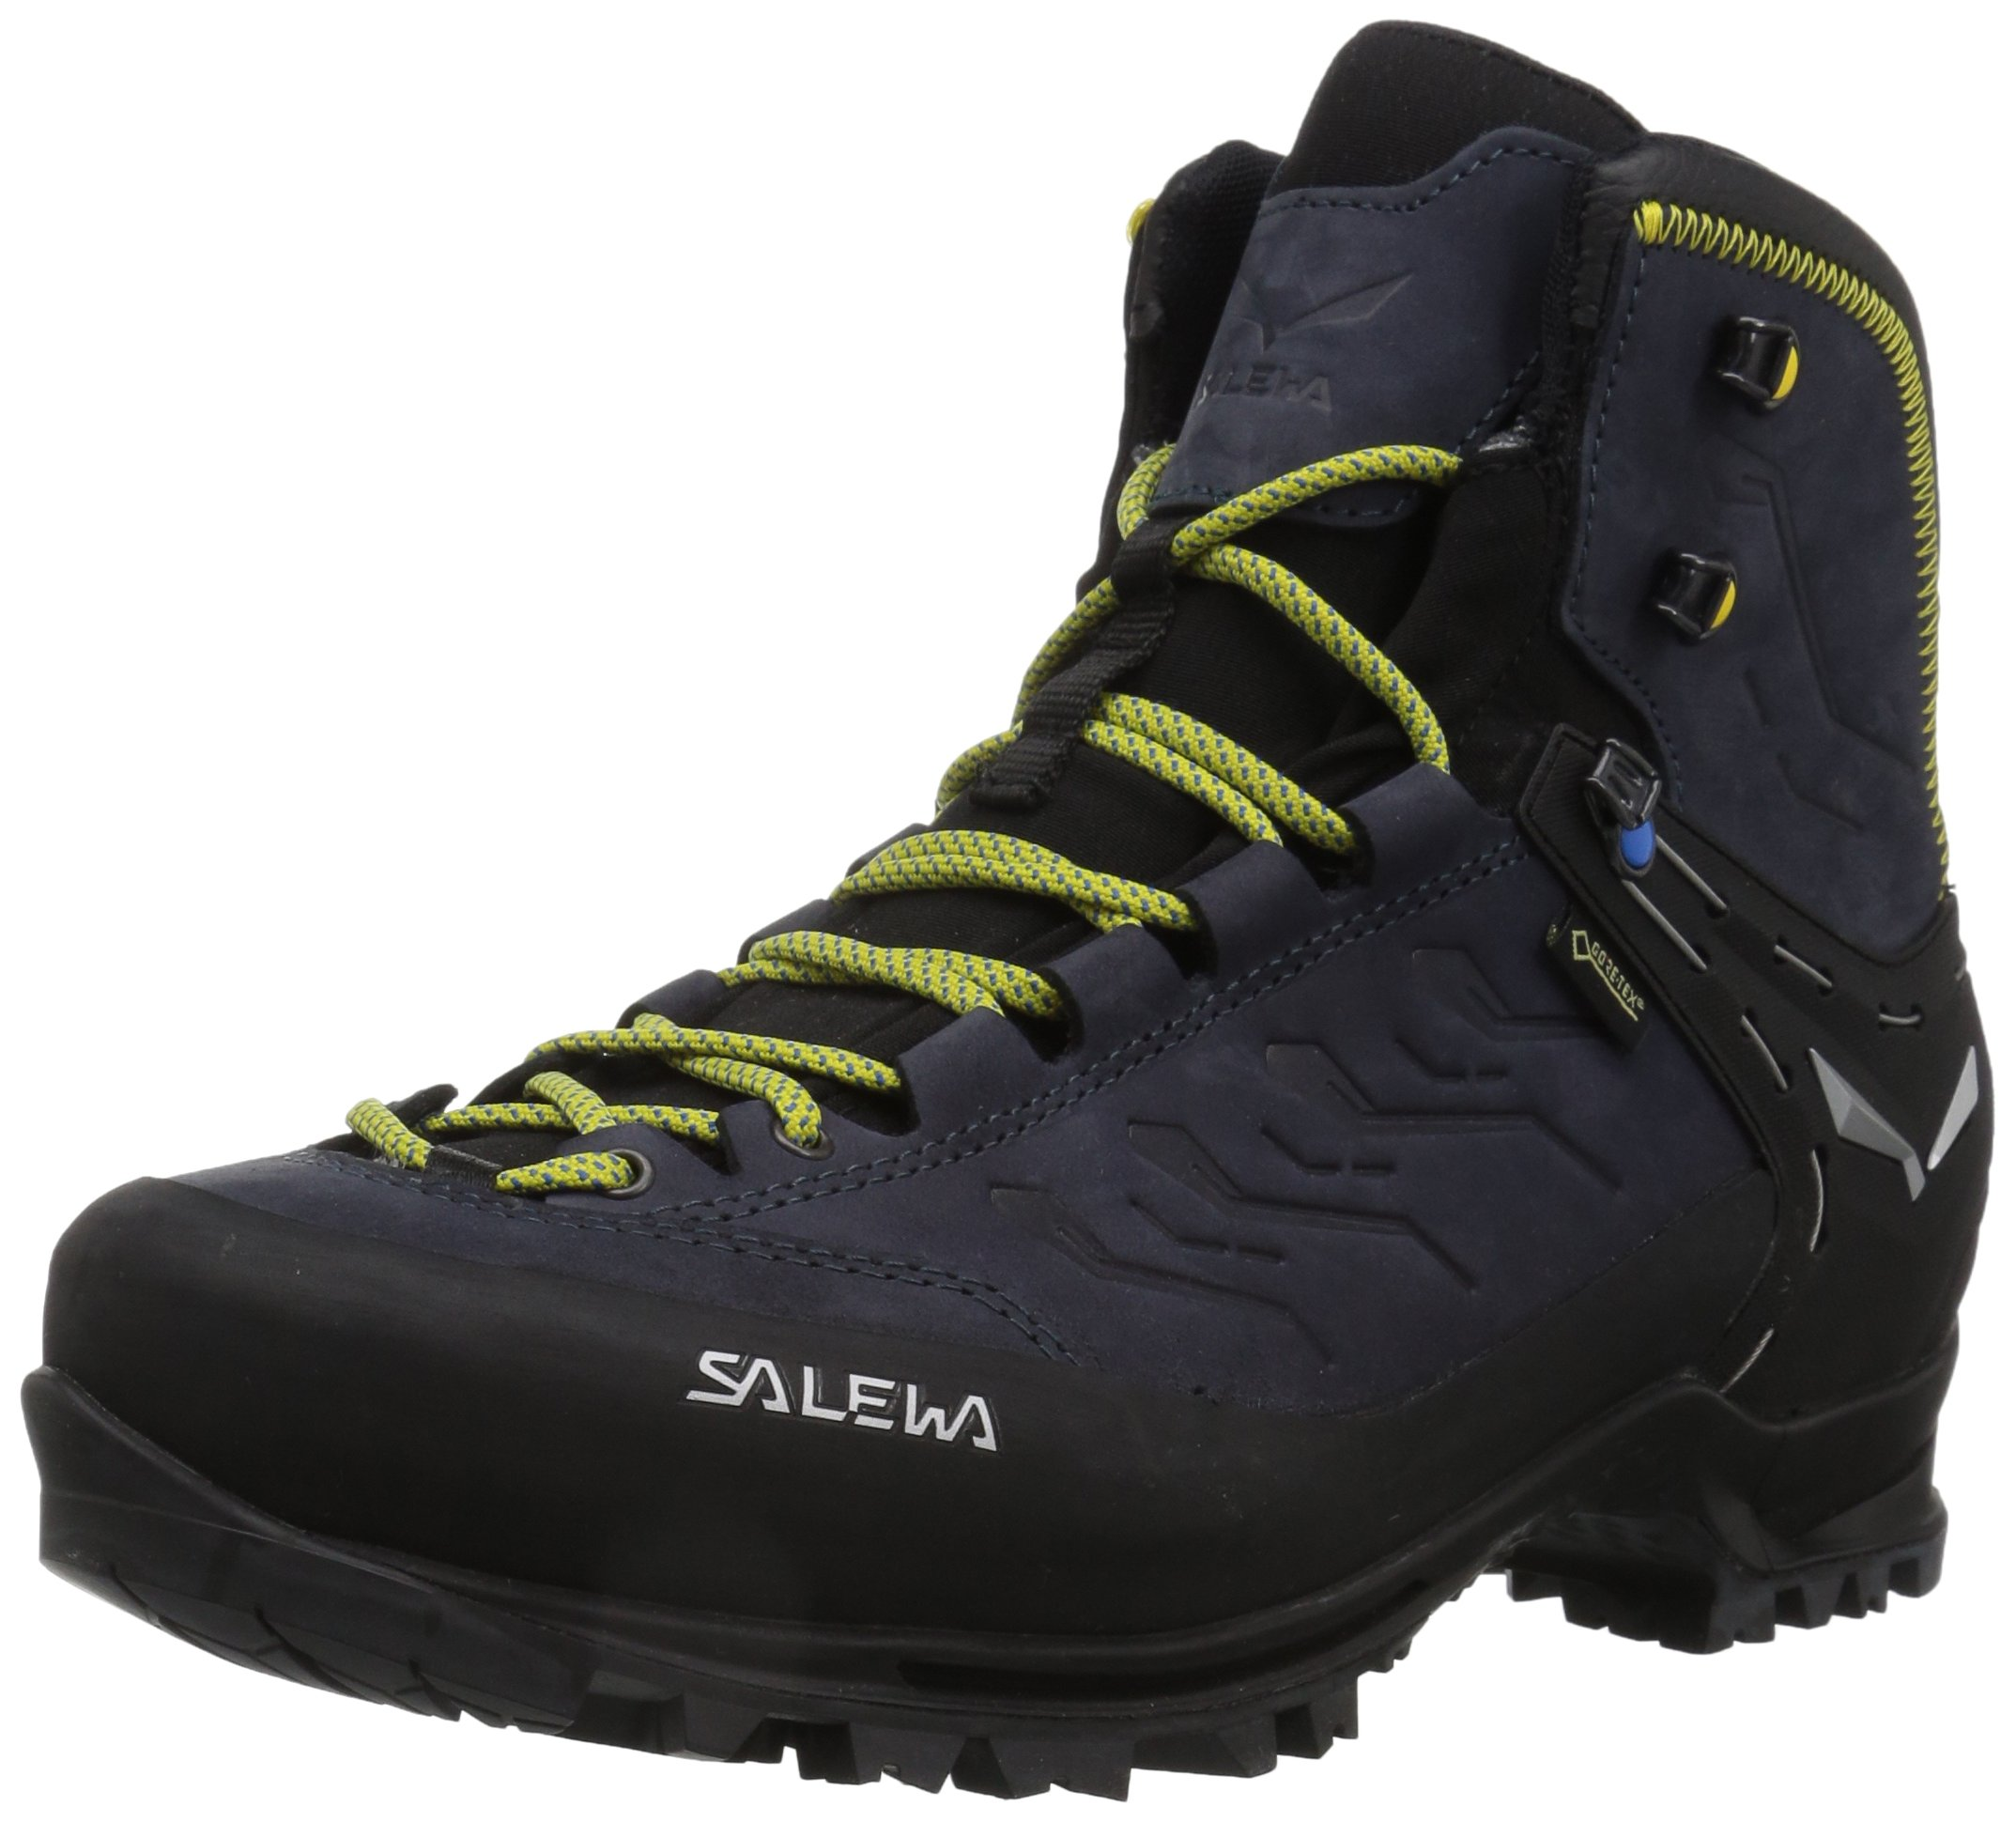 Salewa Men's Rapace Gtx Mountaineering Boot, Black/Kamille, 8